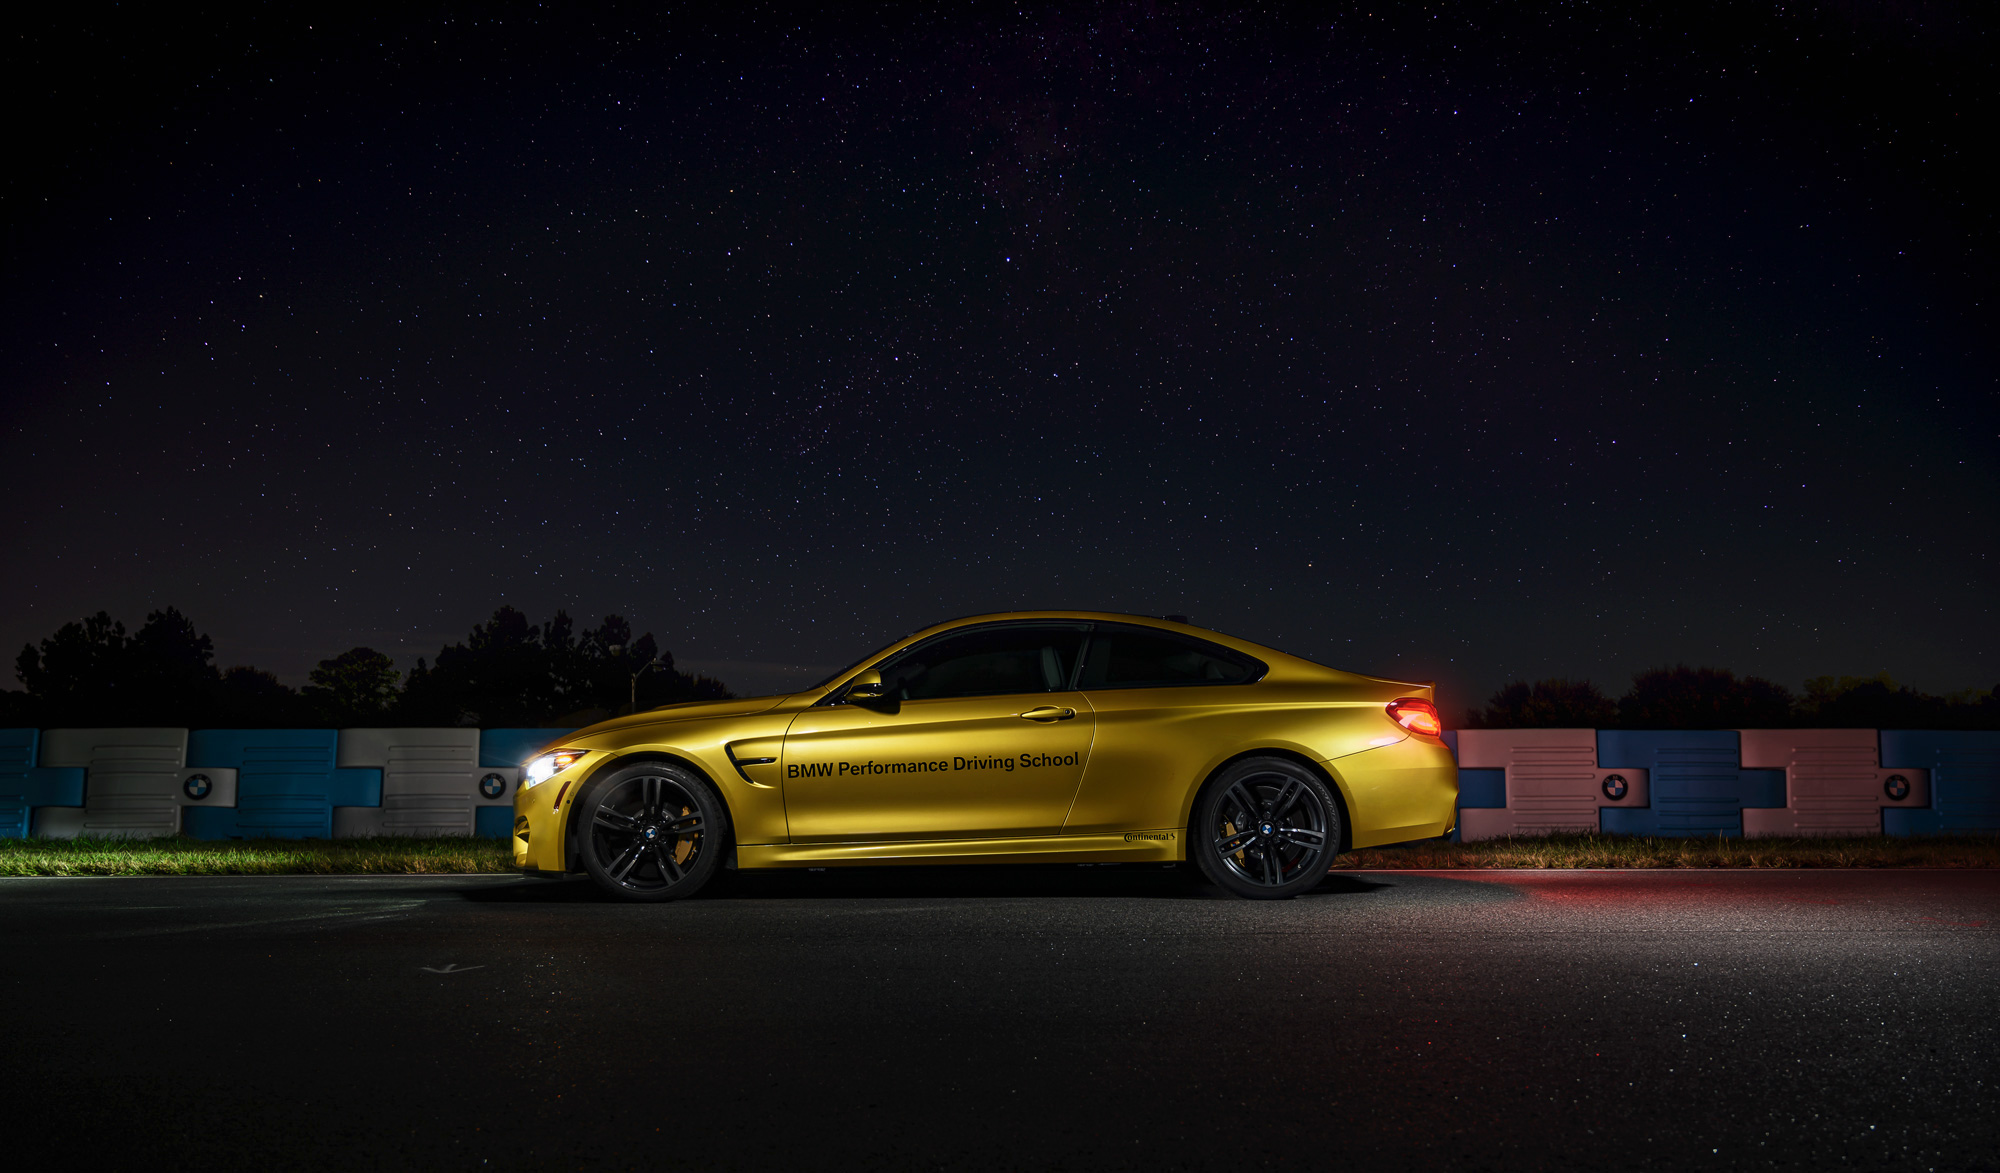 Cars and stars: How to shoot the night sky, Part 1